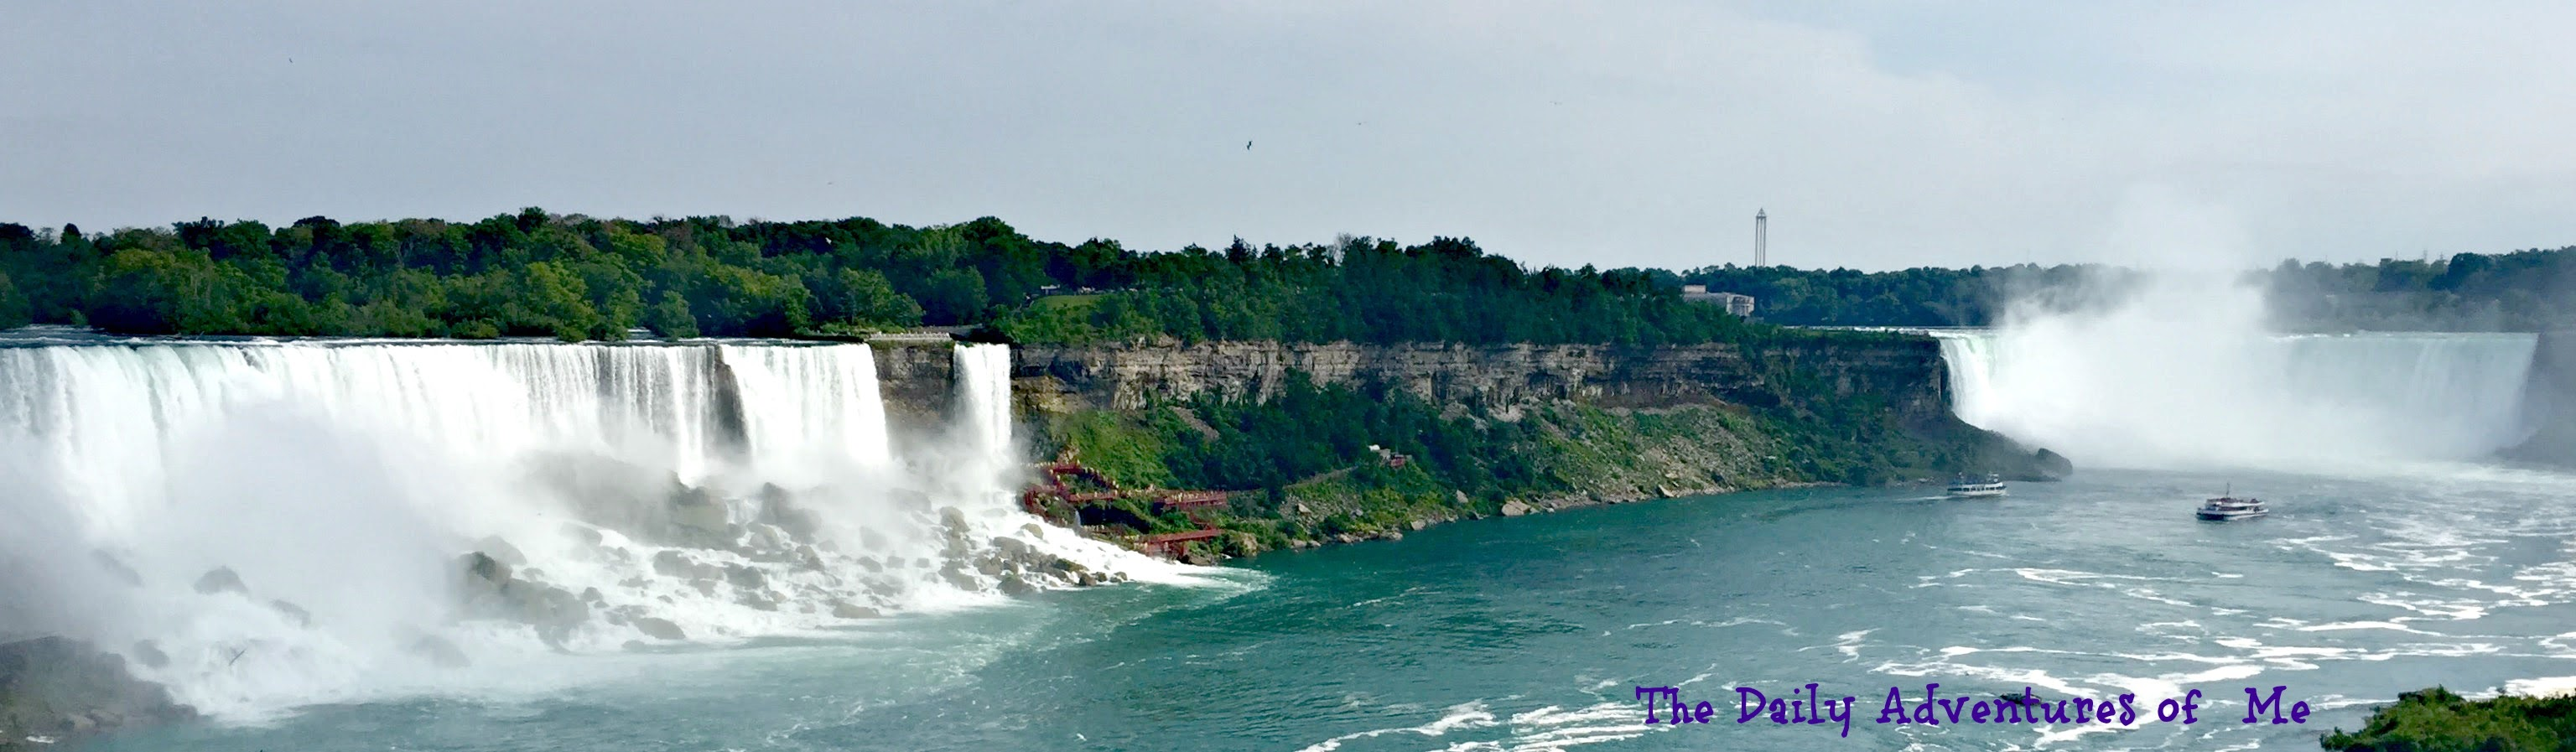 10 Great Family Activities Around Not Just At Niagara Falls You Must Do This Summer